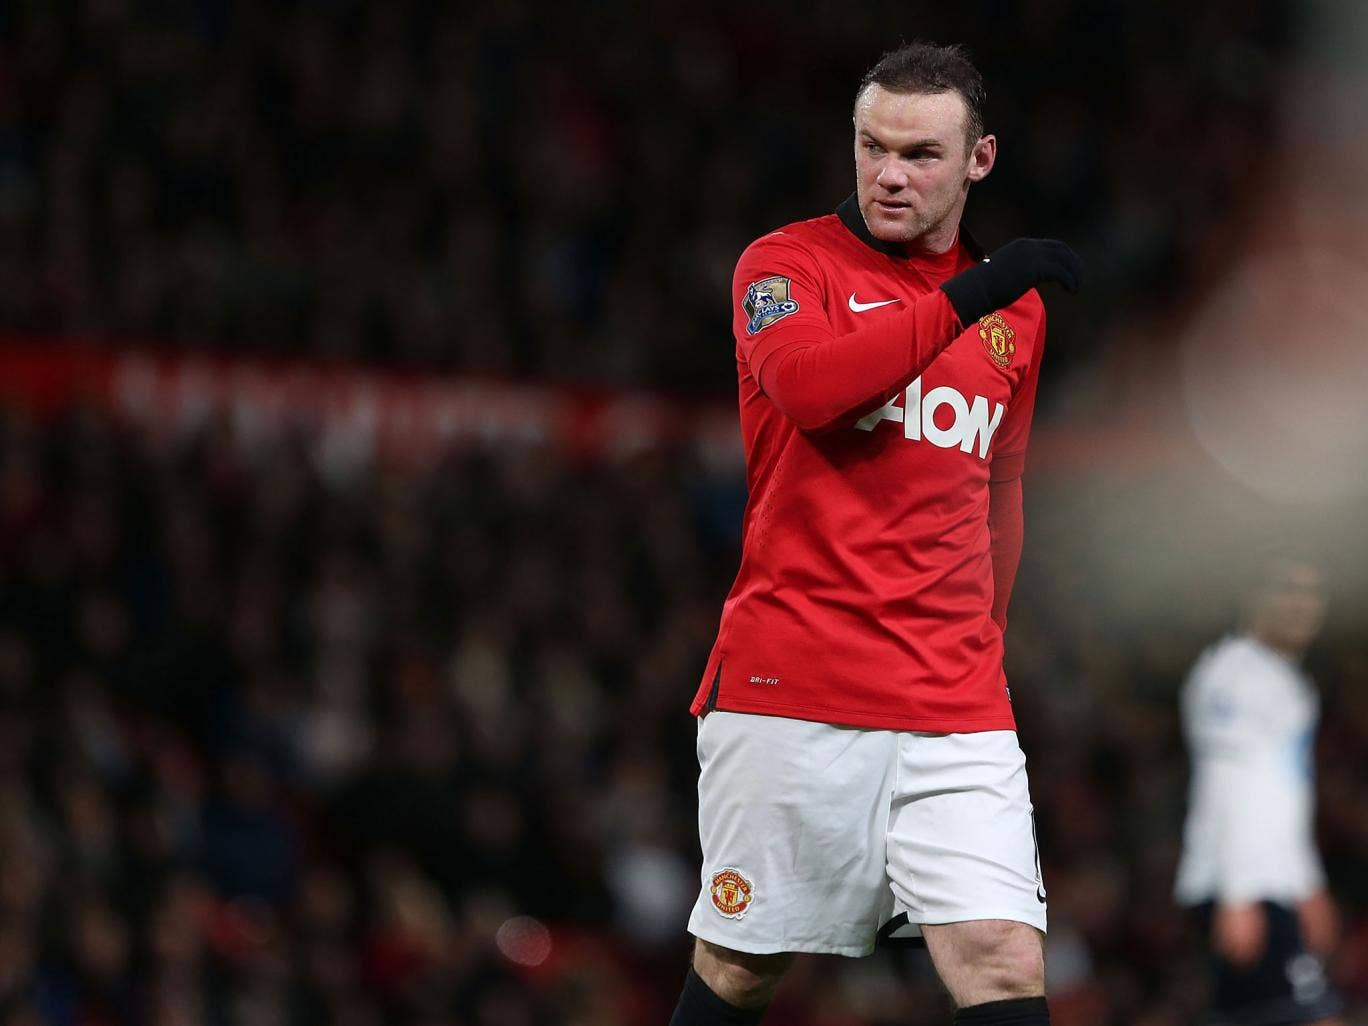 Wayne Rooney is unlikely to feature in Manchester United's trip to Chelsea on Sunday